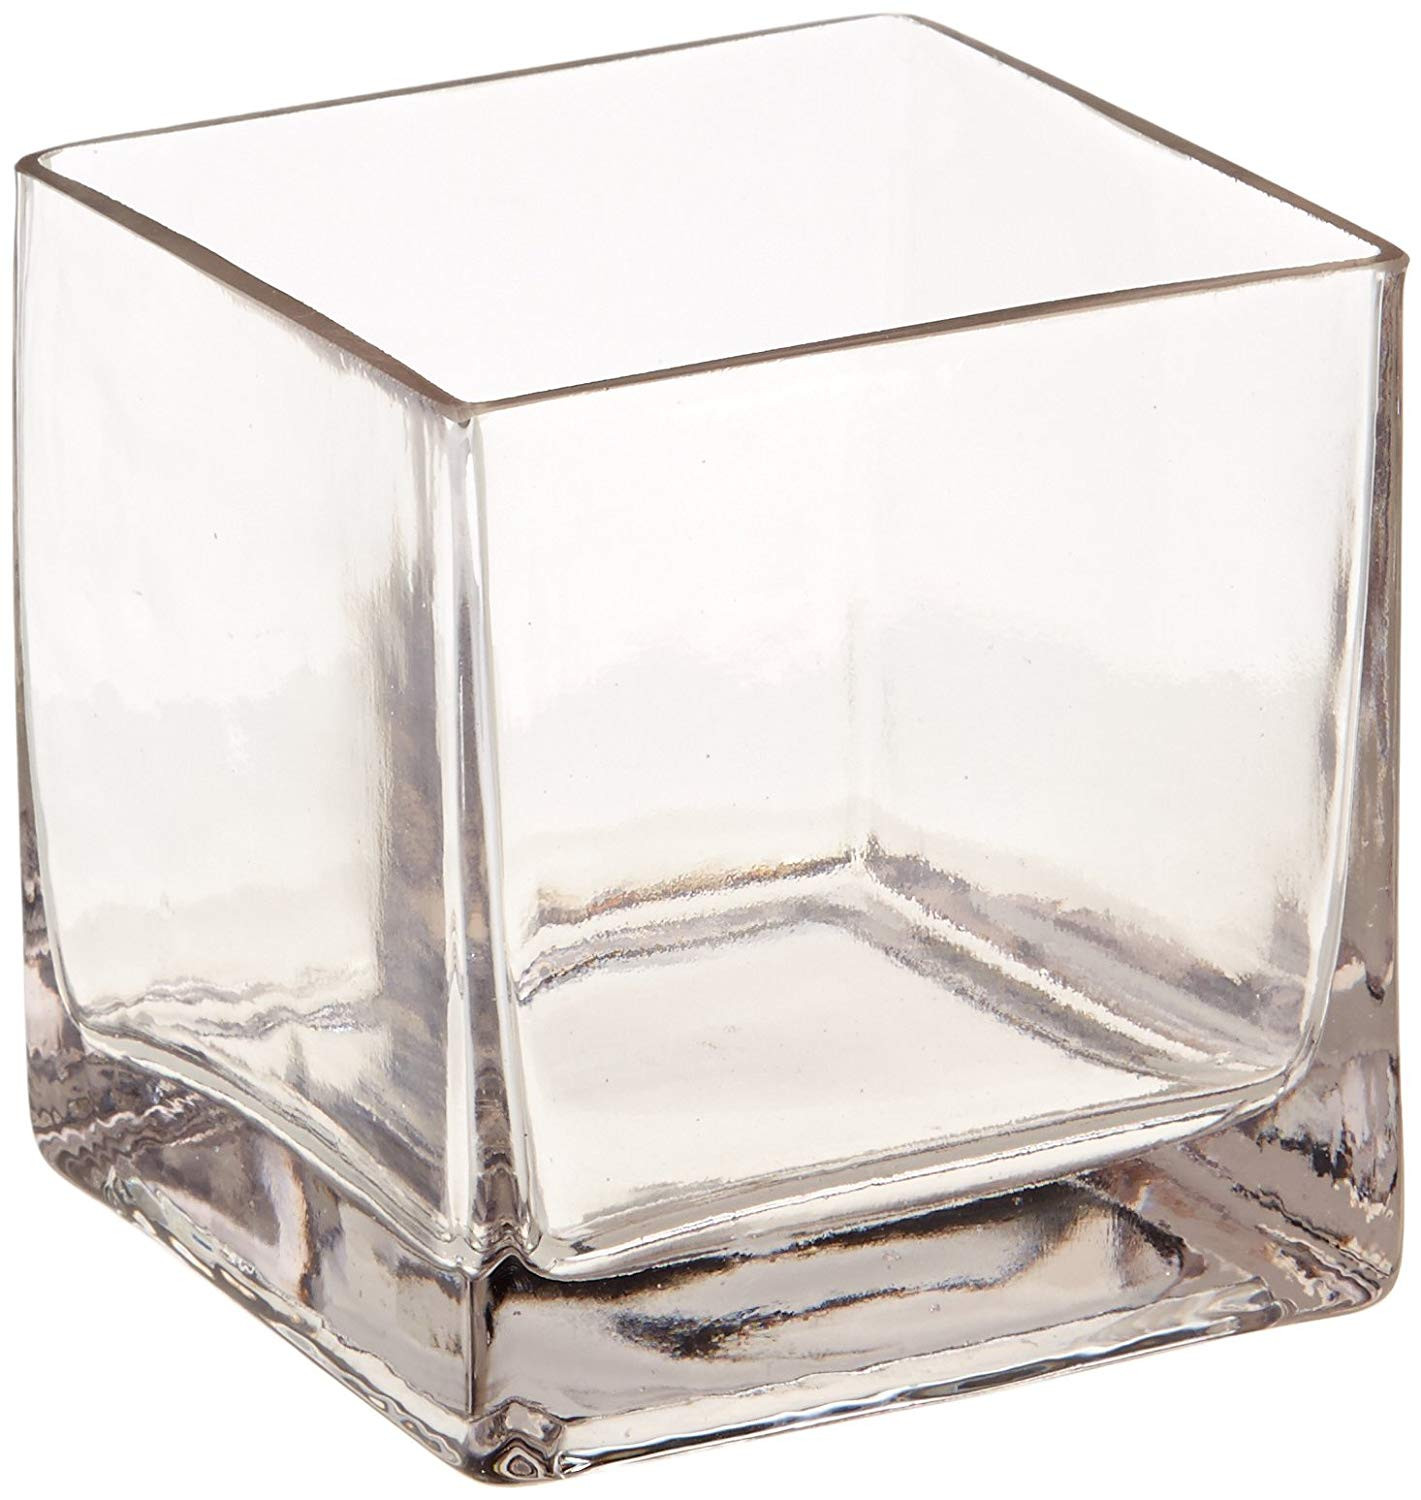 flower vase online india of buy 12piece 4 square crystal clear glass vase online at low prices in buy 12piece 4 square crystal clear glass vase online at low prices in india amazon in